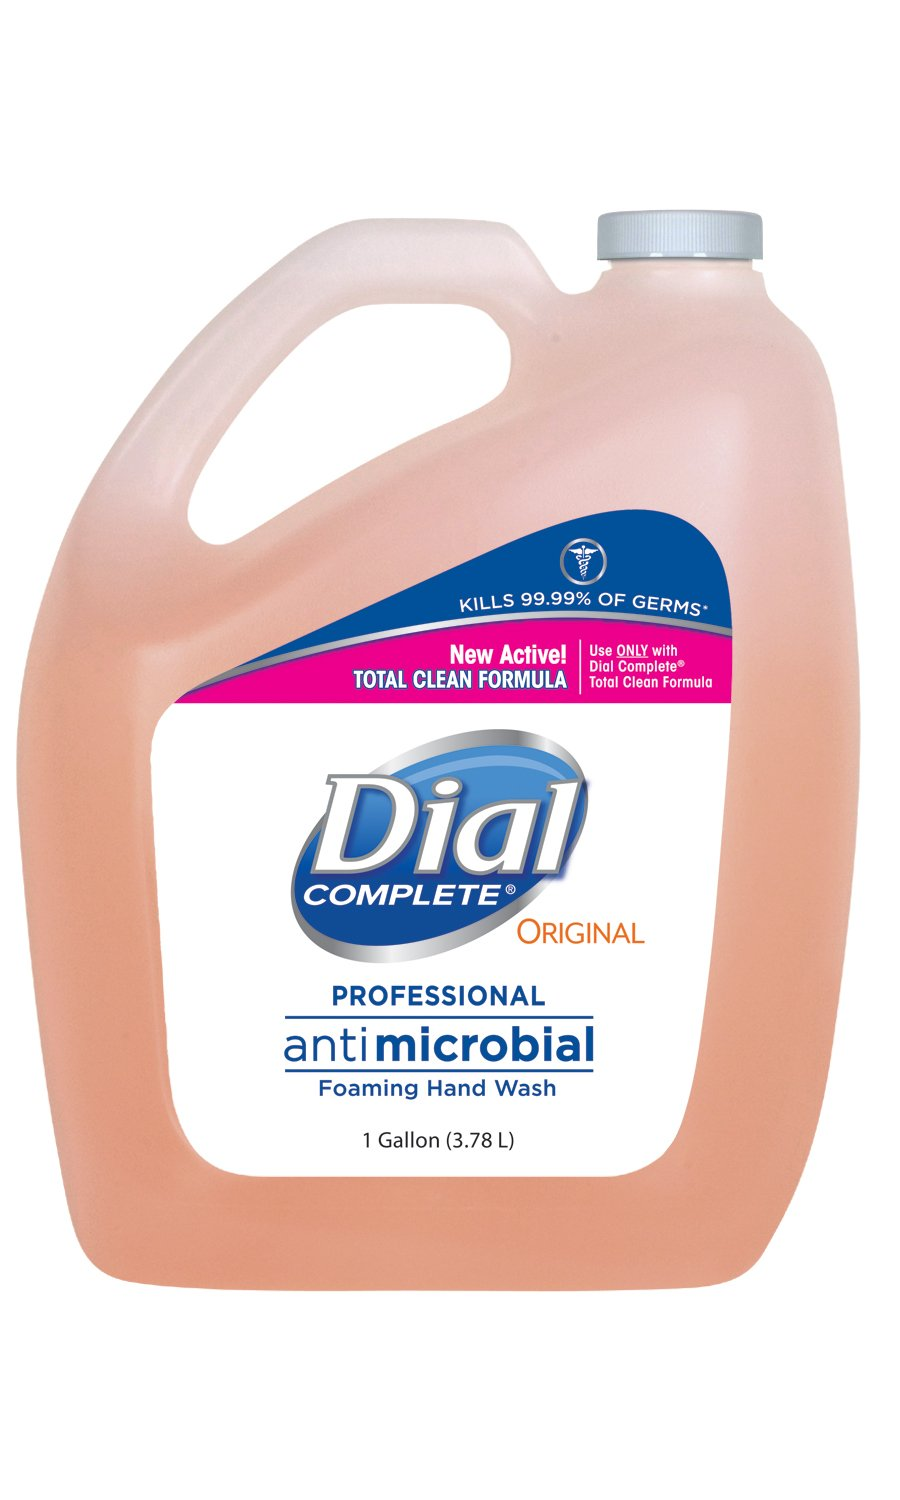 Dial Complete 1434633 Antimicrobial Foaming Hand Soap, 1 Gallon Bottle (Pack of 4) by Dial